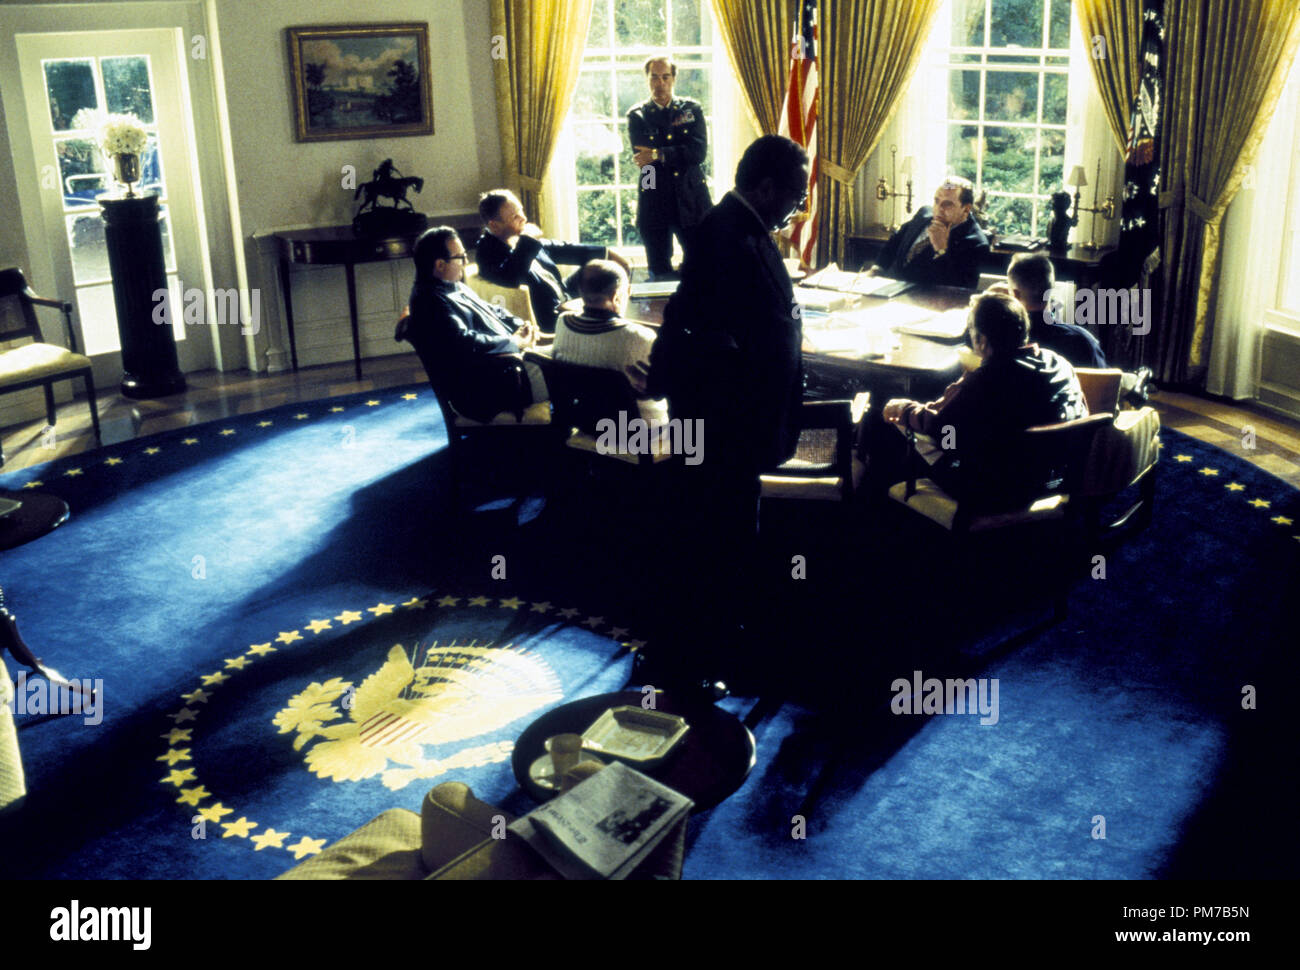 Film Still from 'Nixon' Anthony Hopkins, James Woods, David Paymer, Paul Sorvino, Kevin Dunn, E.G. Marshall, J.T. Walsh, Powers Boothe © 1995 Cinergi Photo Credit: Sidney Baldwin  File Reference # 31043174THA  For Editorial Use Only - All Rights Reserved - Stock Image